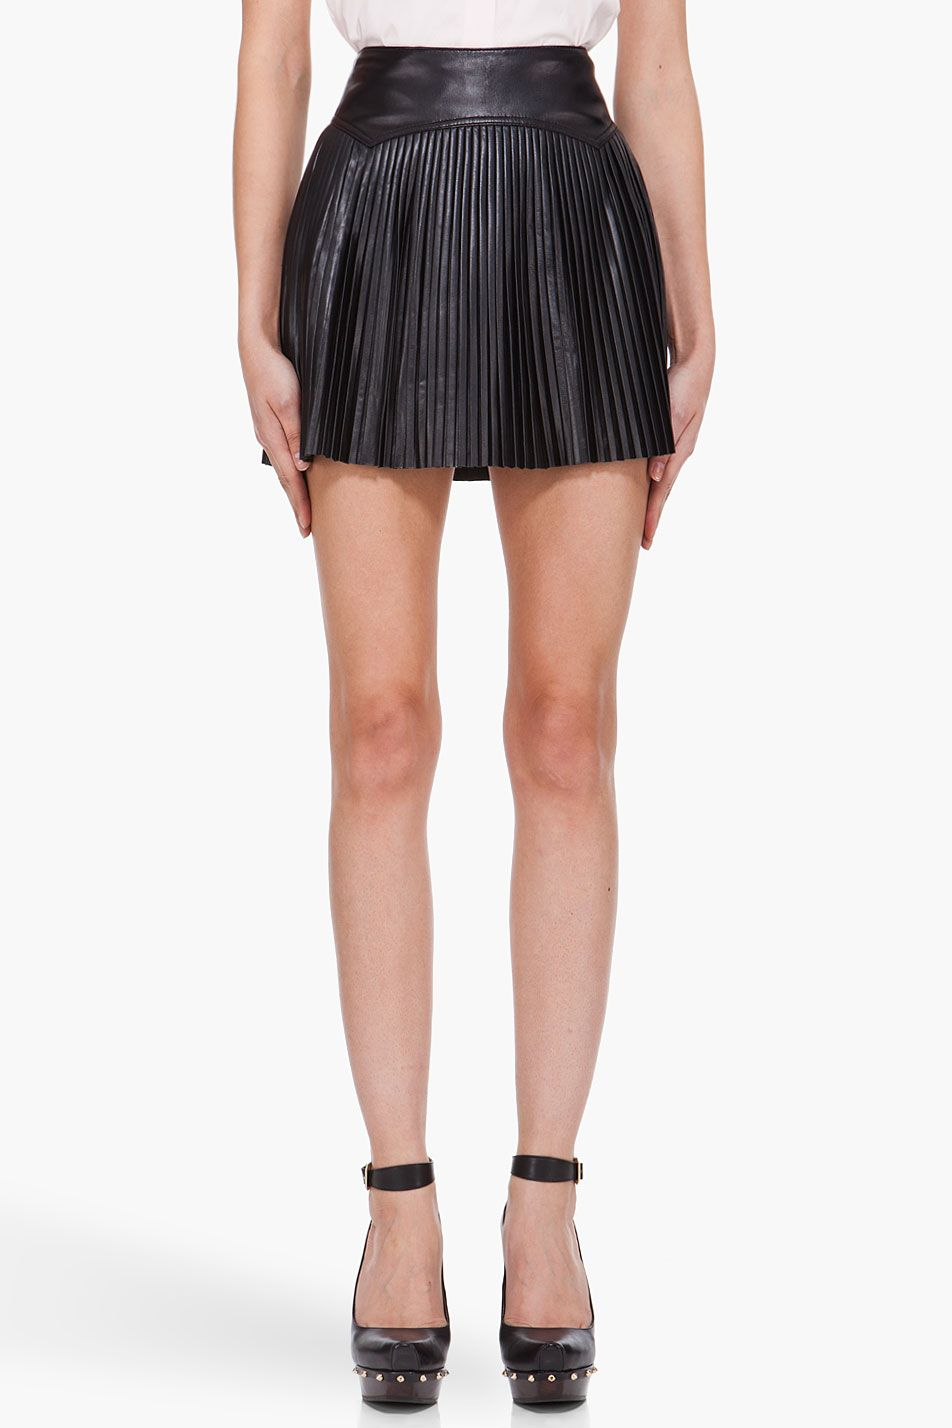 76b3b8490034 MCQ ALEXANDER MCQUEEN Black Pleated Leather Skirt | Slate. Smoke ...